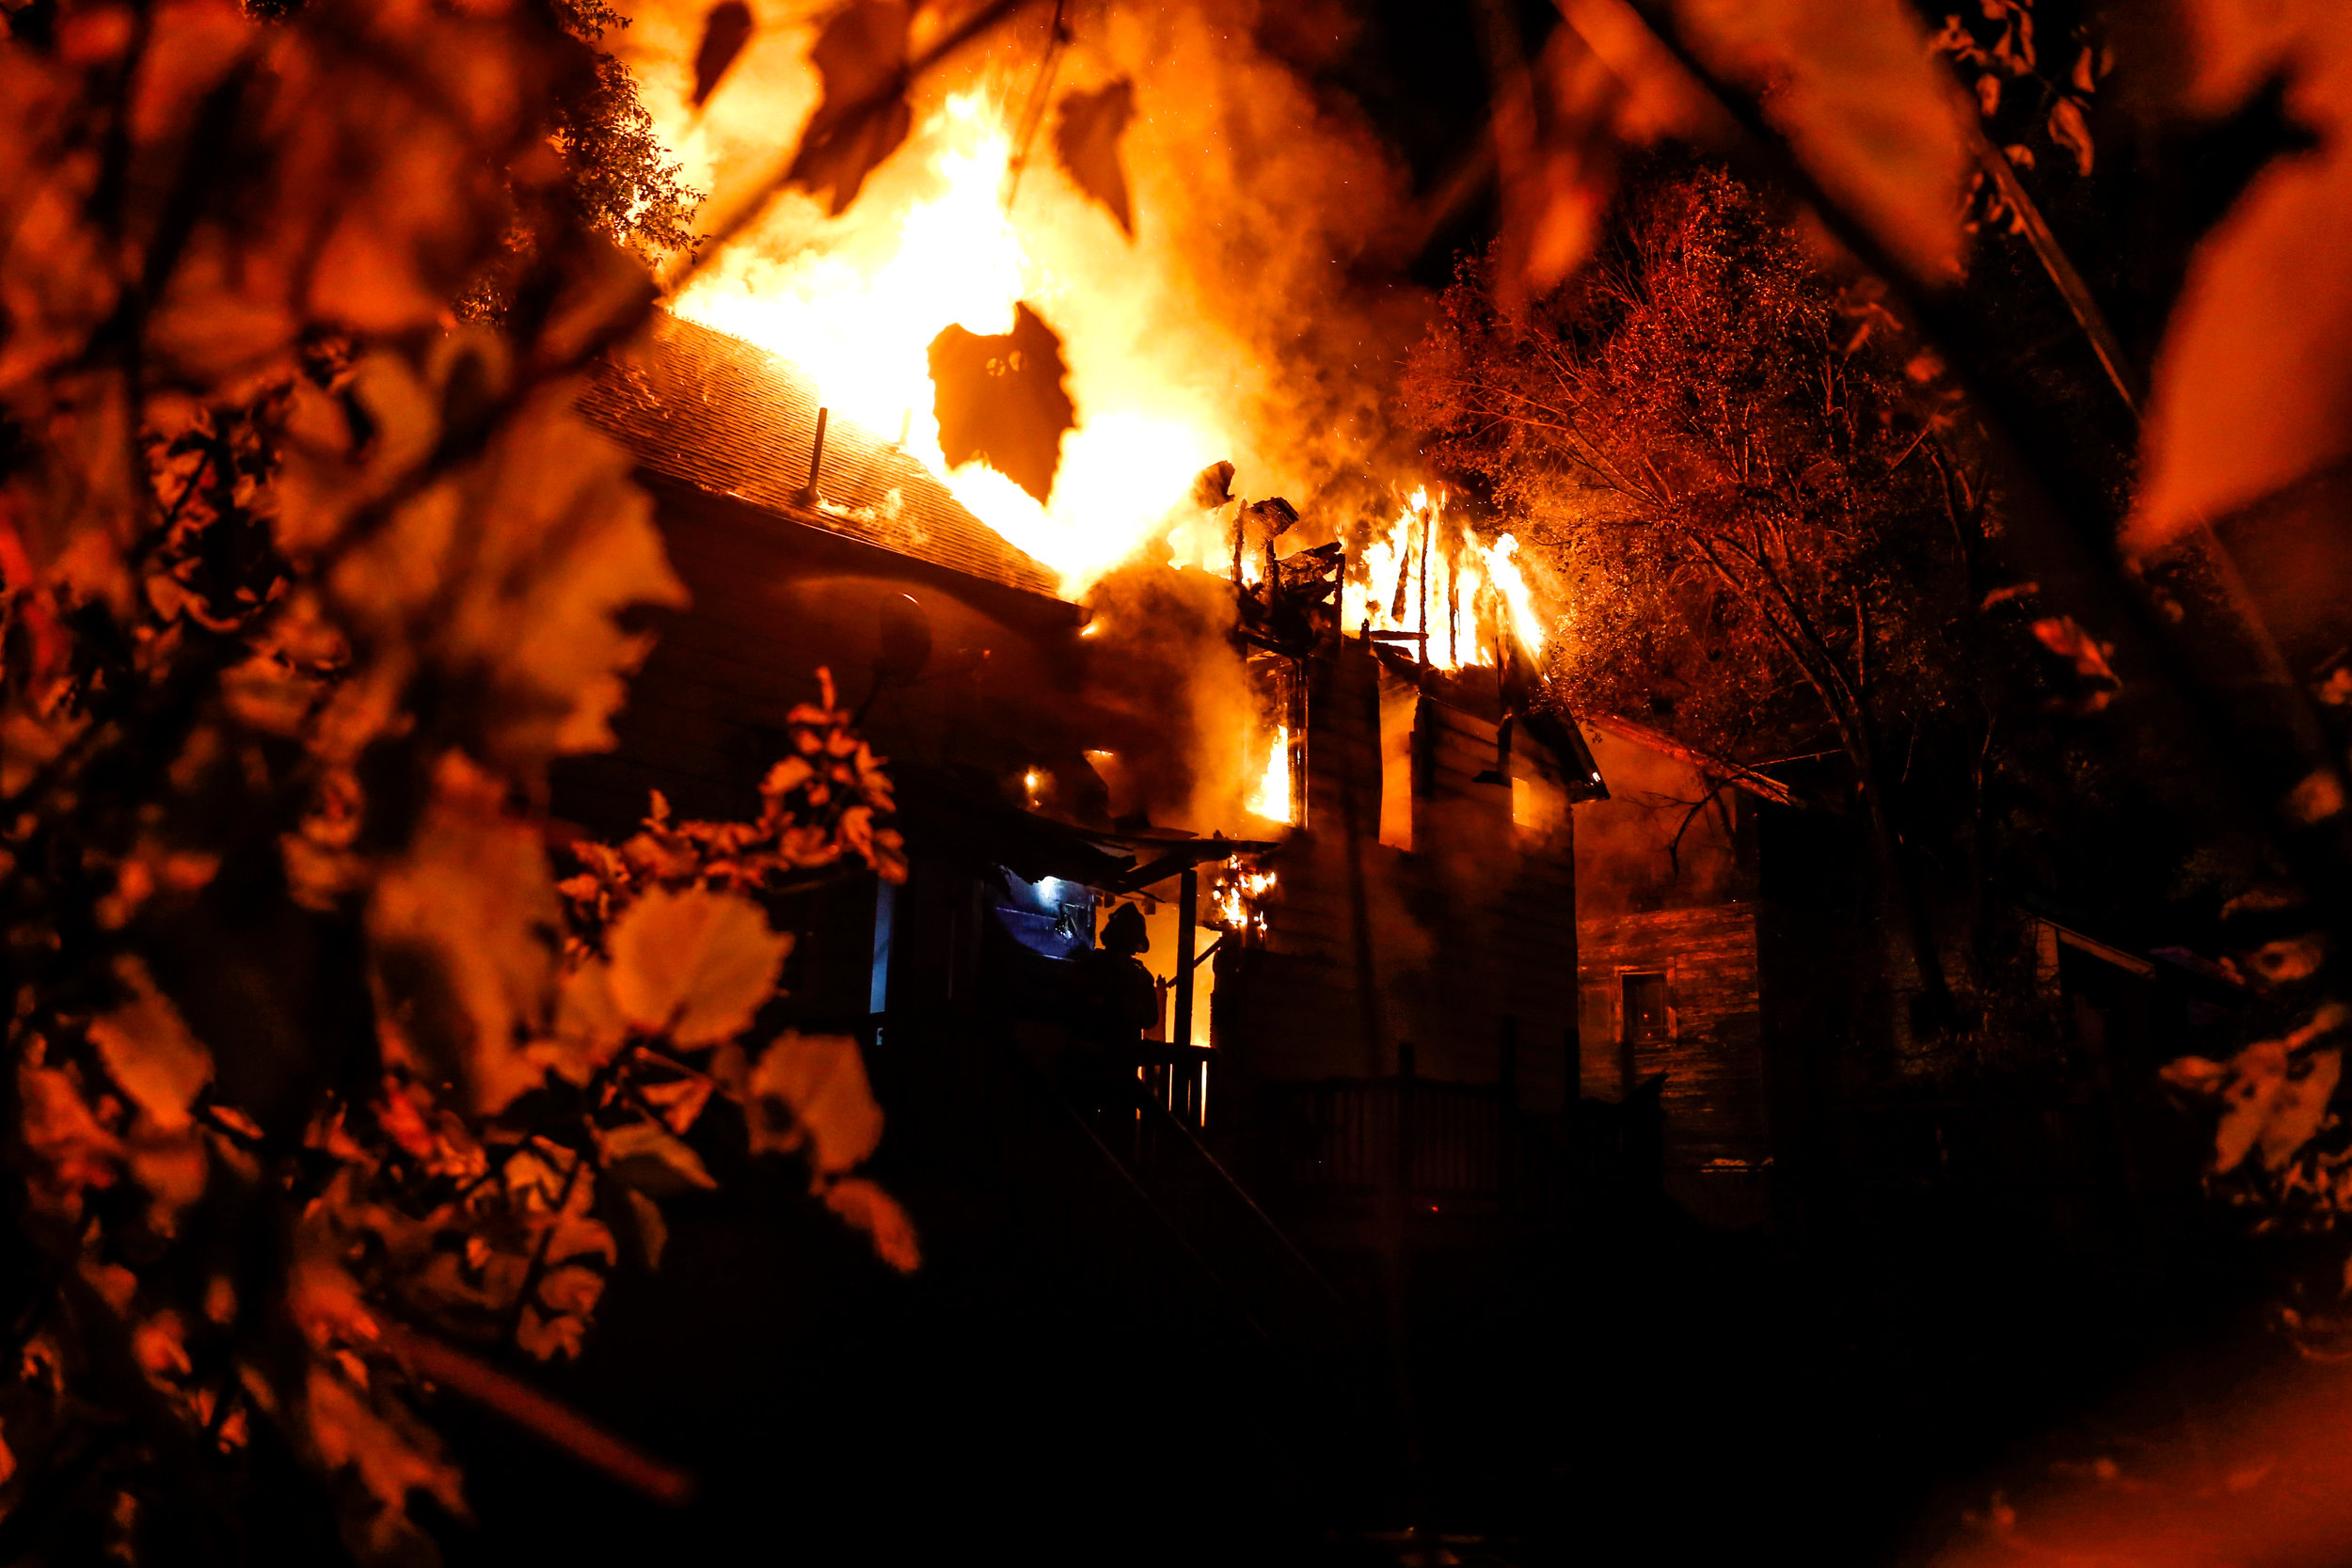 Flint firefighters and other emergency personnel respond to a vacant house fire during Devil's Night on Monday, Oct. 31, 2016 in Flint. Devil's Night received its name for its association with arson and other serious vandalism on the night before Halloween. In the late 1980s, the destruction peaked when hundreds of houses were destroyed in Detroit's inner-cities and surrounding areas.